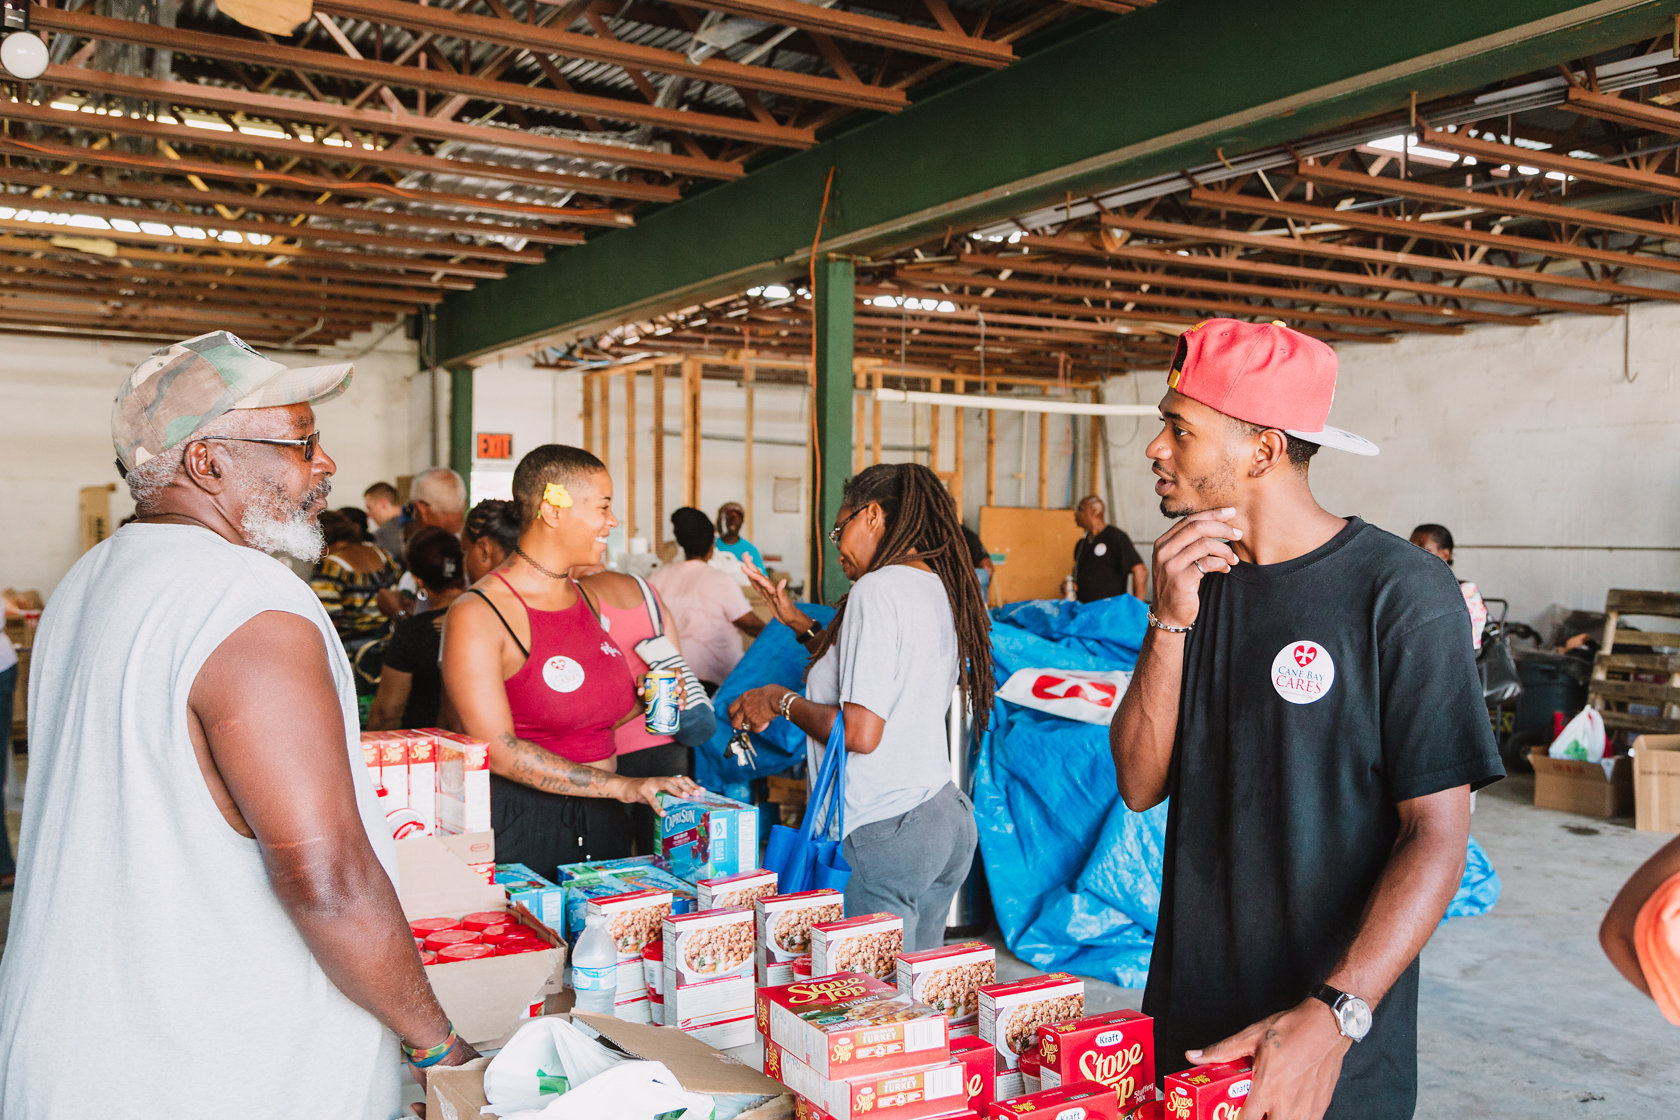 750 Individuals And Families Received Overflowing Bags Of Food From Cane Bay Cares Ahead Of The Thanksgiving Holiday Tuesday, Nov. 21 At Foundation Ministries. Photo Credit: Nicole Canegata Http://nicolecanegata.com/